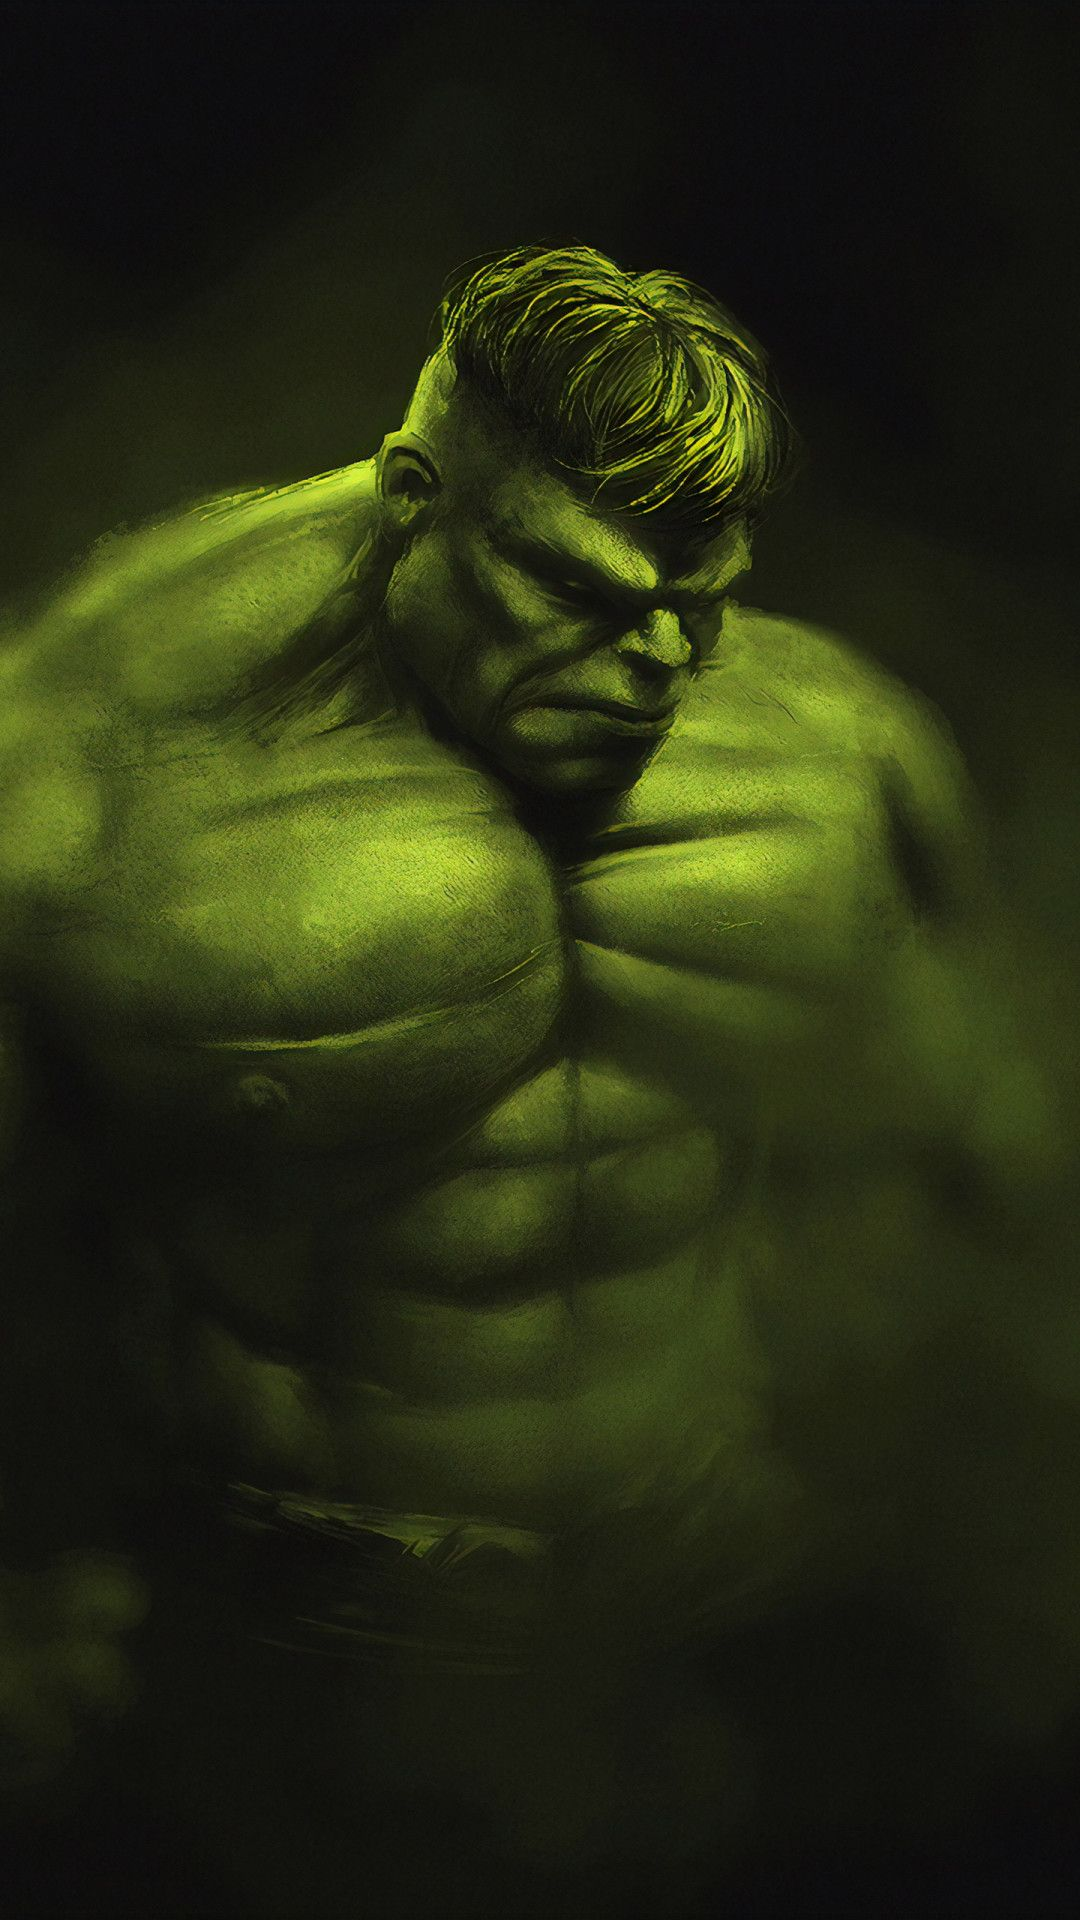 Hulk The Almighty Mobile Wallpaper (iPhone, Android